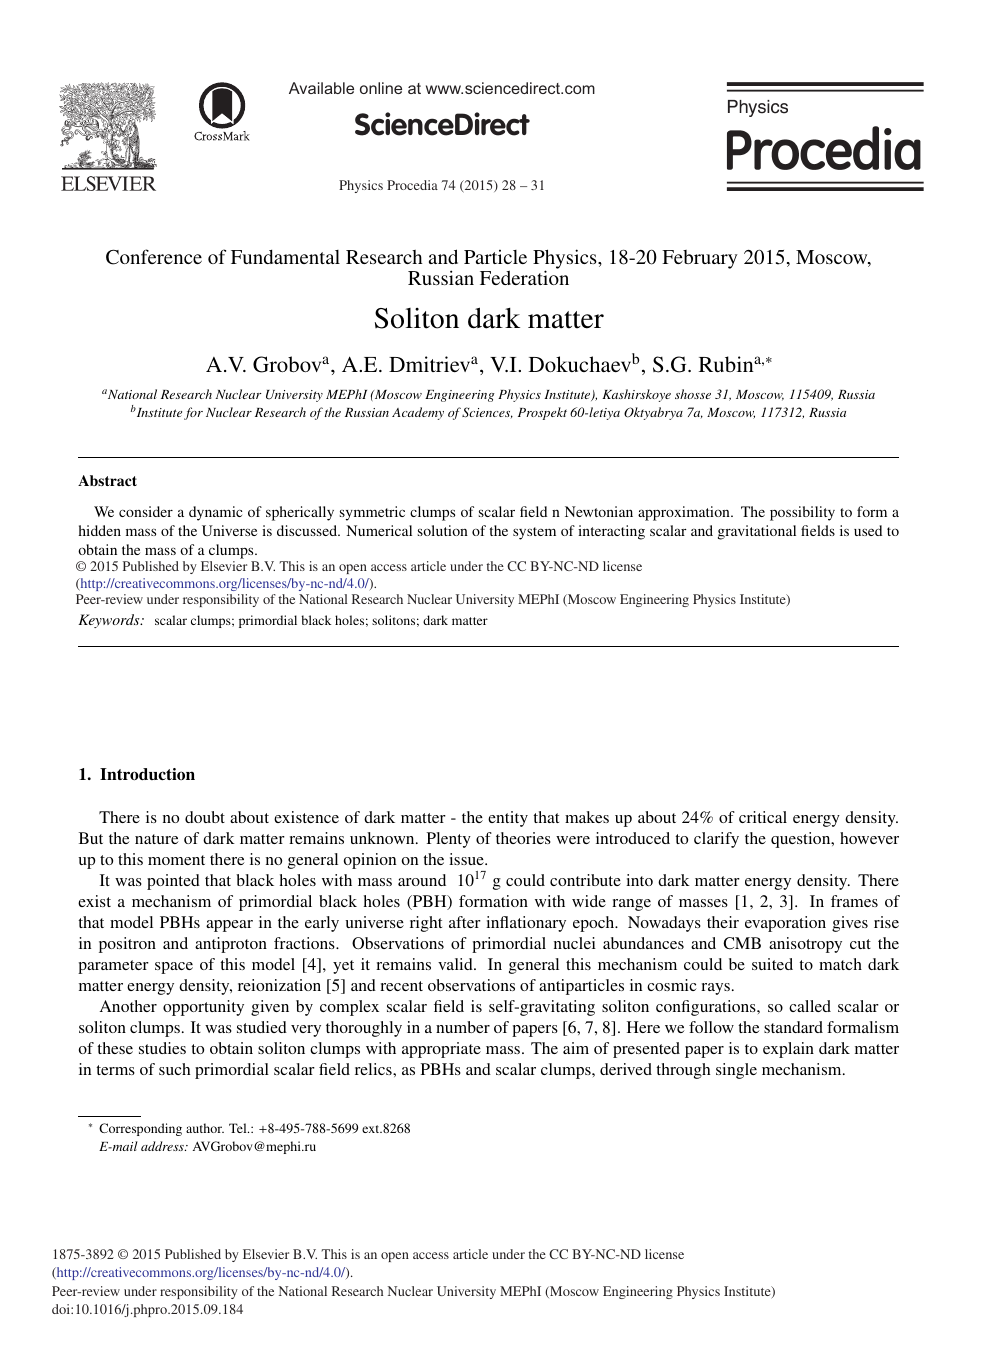 Soliton Dark Matter – topic of research paper in Physical sciences